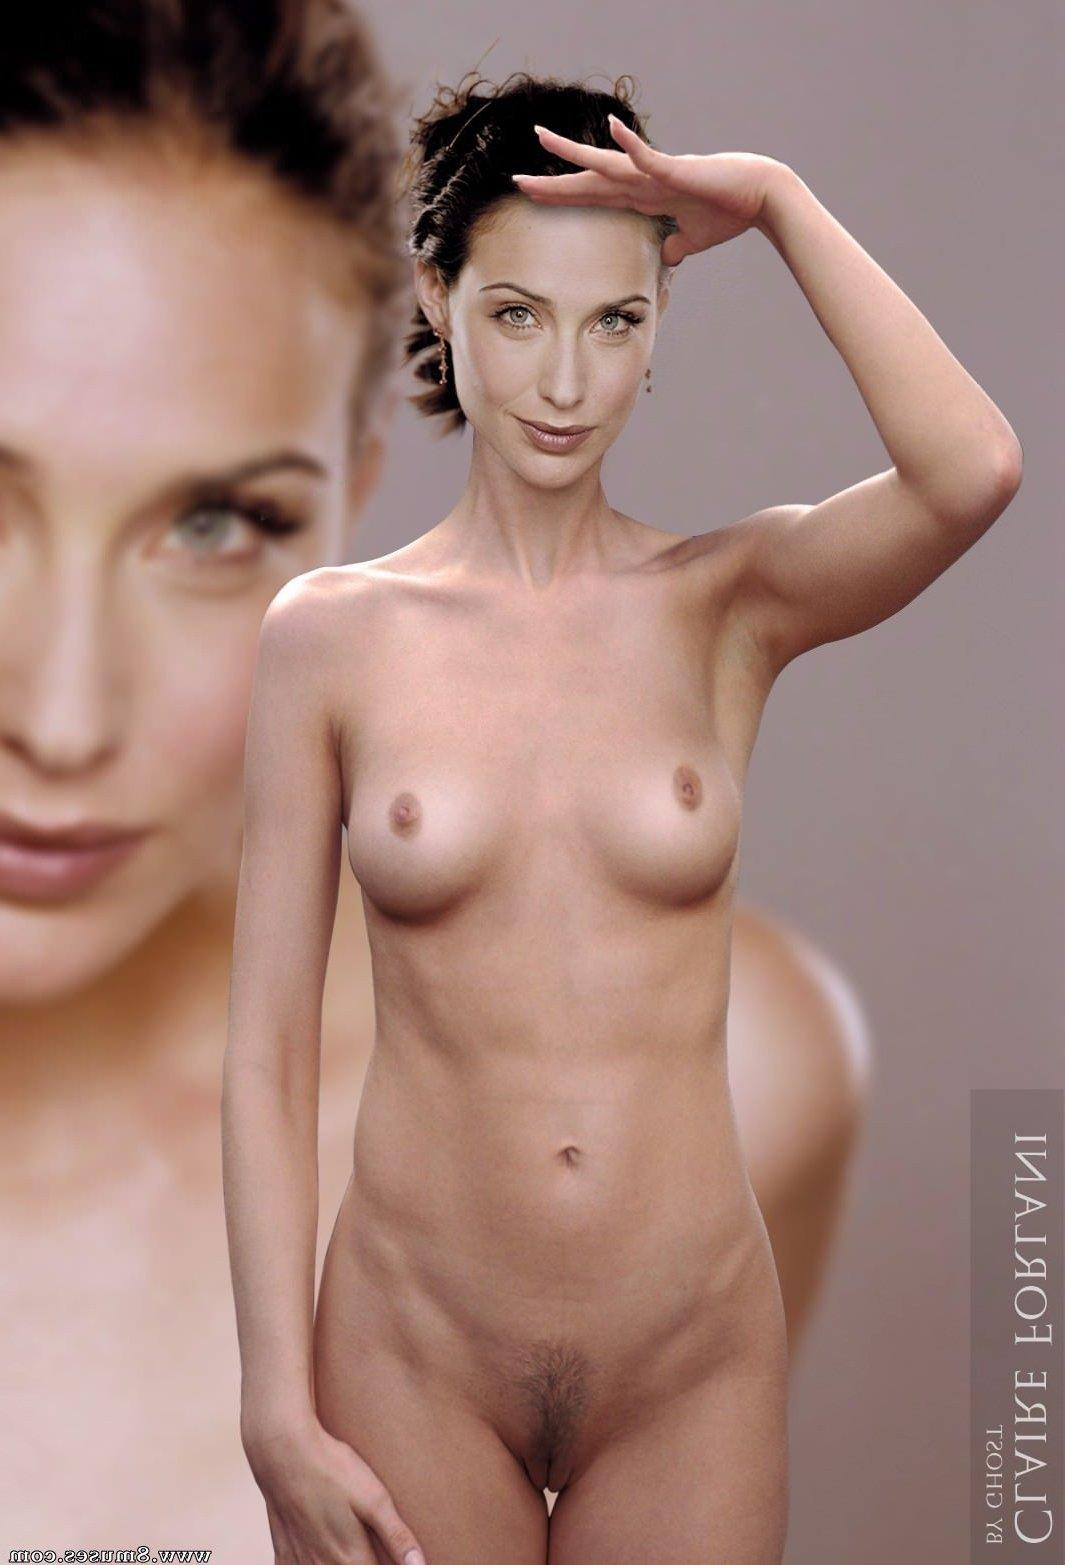 Fake-Celebrities-Sex-Pictures/Claire-Forlani Claire_Forlani__8muses_-_Sex_and_Porn_Comics_6.jpg